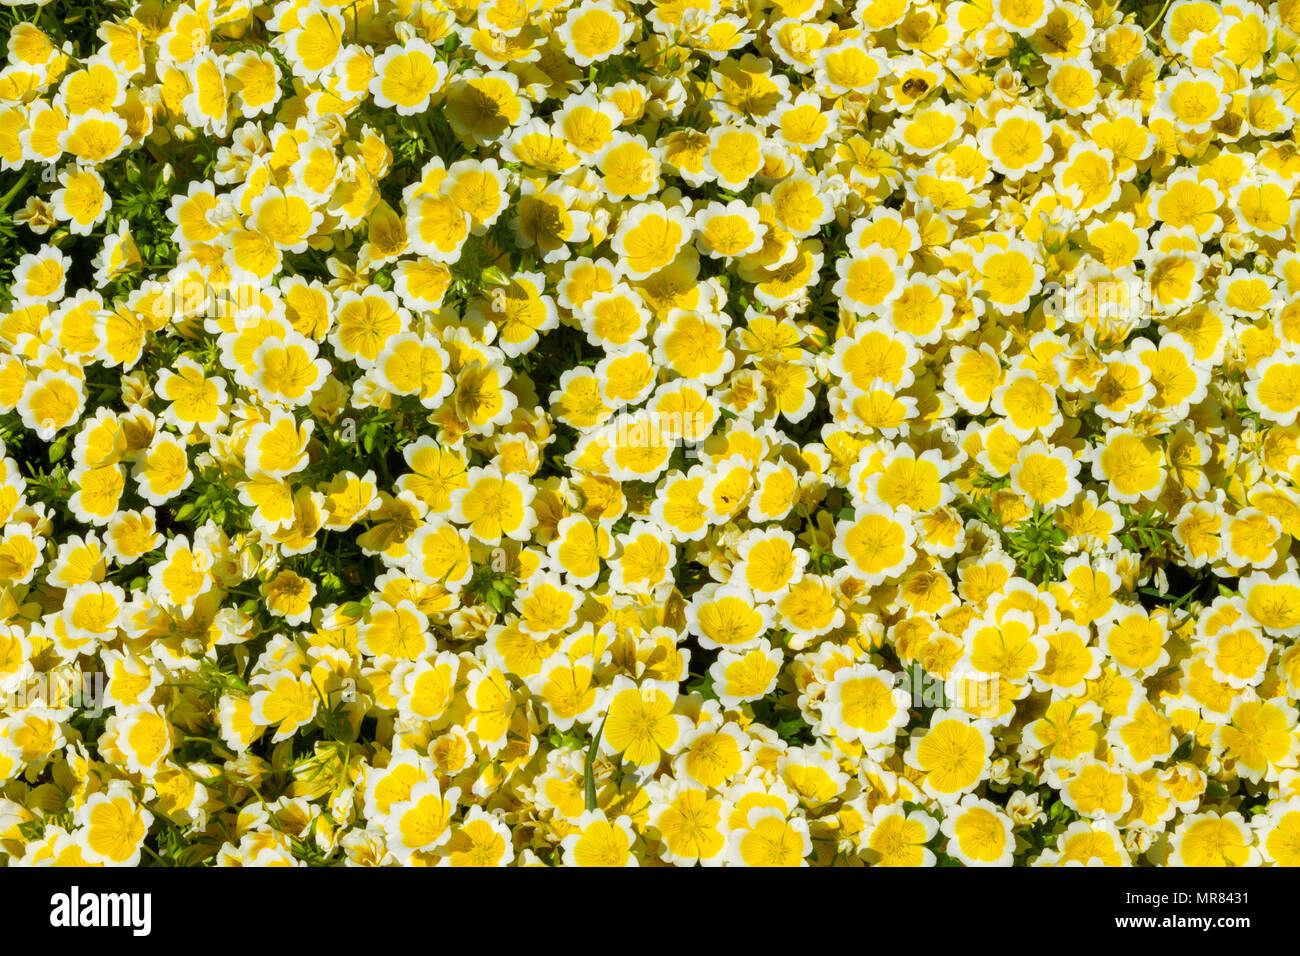 poached egg plant, Limnanthes douglasii covering the ground in dense clumps with yellow and white flowers in early summer. - Stock Image